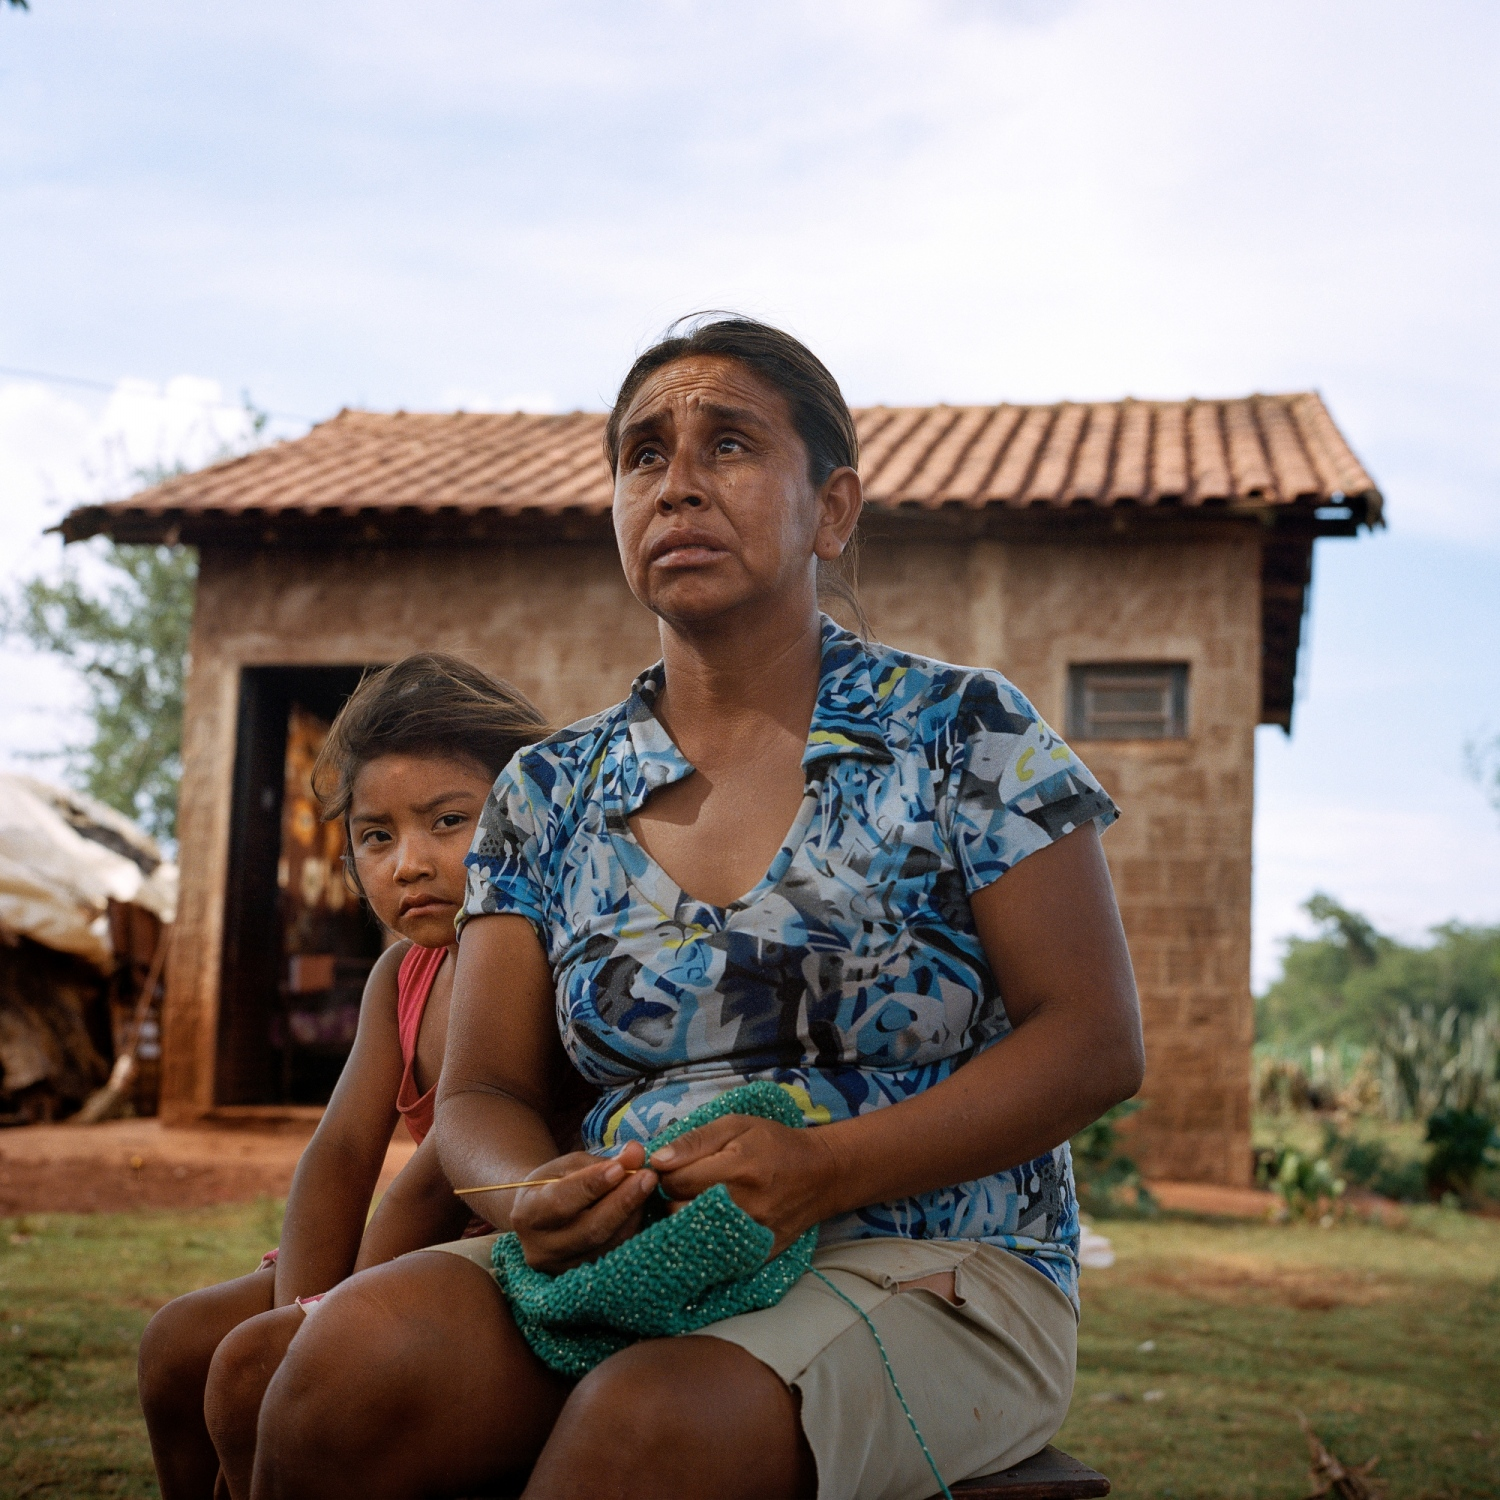 November 28, 2016. Lara Souza and her mother Mara Souza, the x-wife of Onildo de Oliveira who committed suicide in the Dourados Guarani-Kaiówa Reservation in Matto Grosso Du Sul, Brazil. Oliveira committed suicide the previous week, he had spoken about his inability to get work and support his four children, although he had never mentioned thoughts of suicide. He was 39 years old.